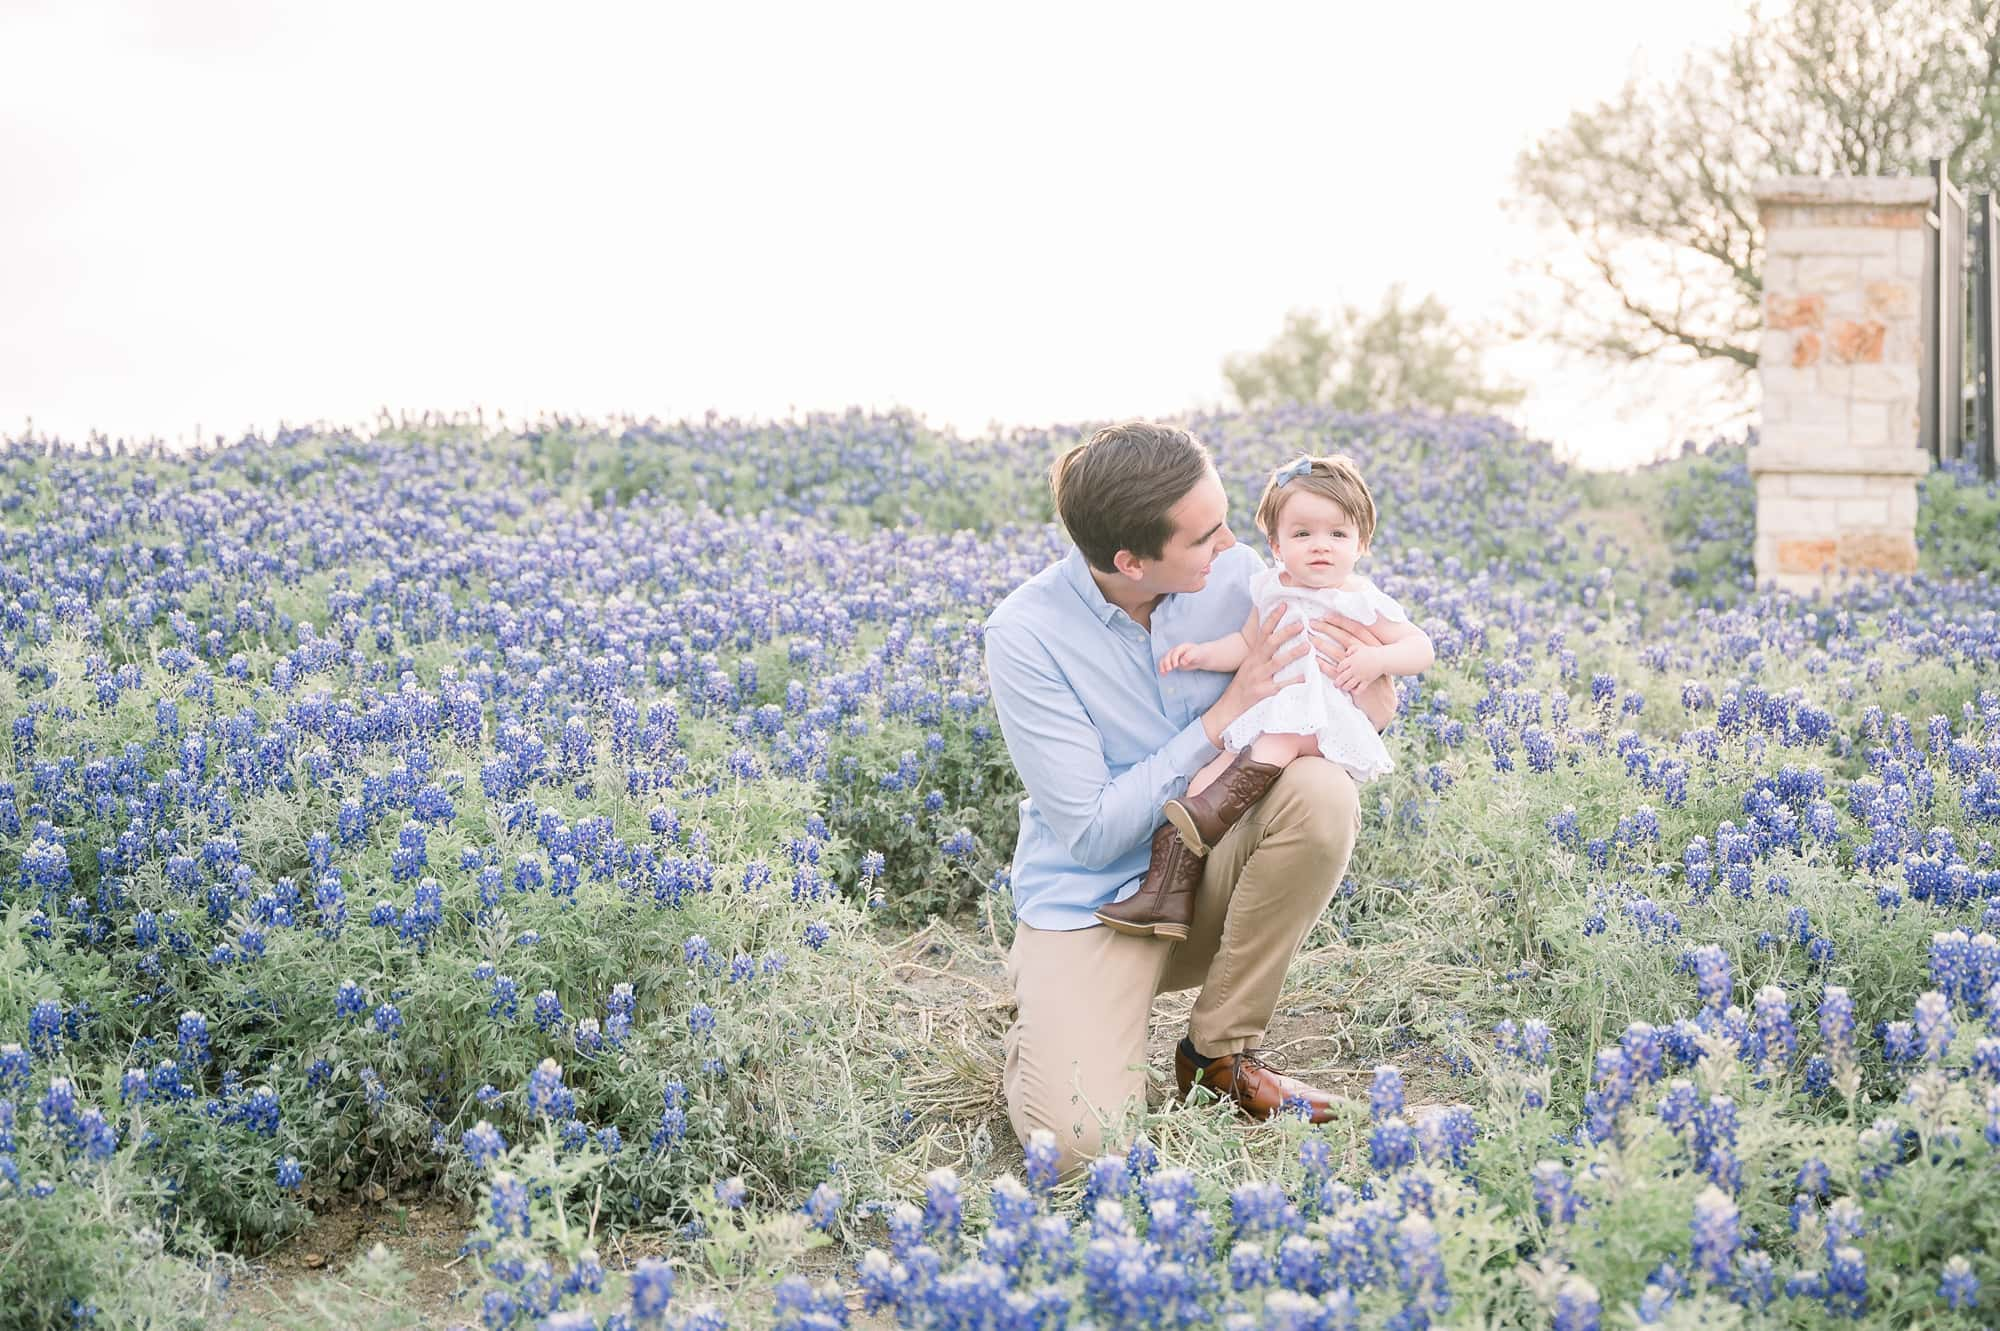 Dad kneels in bluebonnet field with toddler. Photo by Aimee Hamilton Photography.